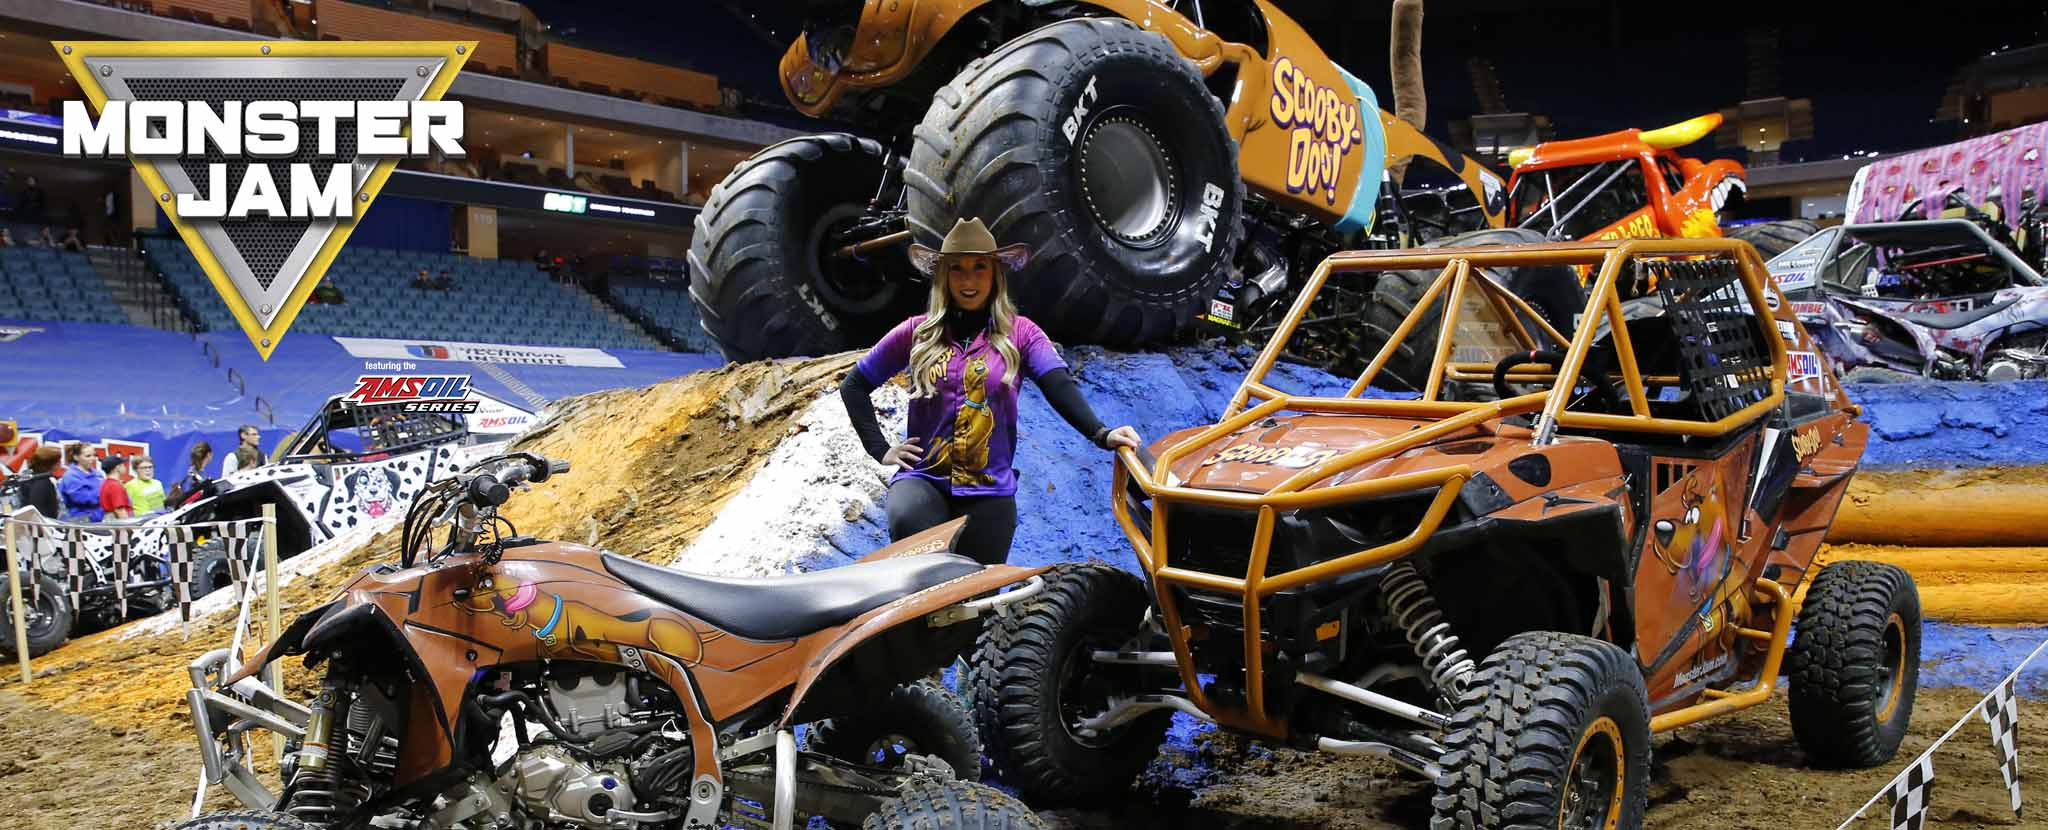 Monster Jam featuring the AMSOIL Series in Tulsa